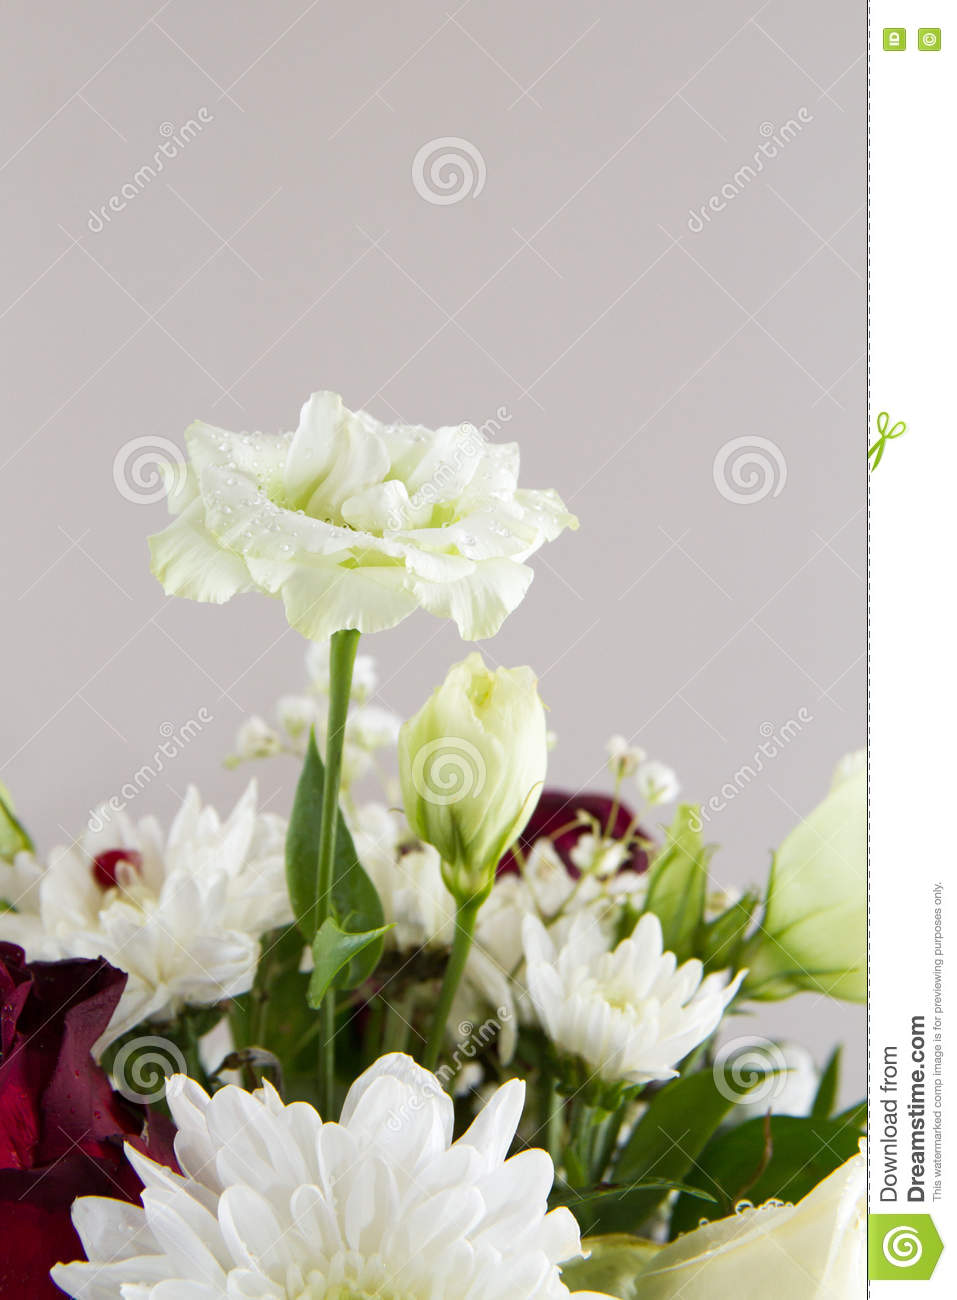 Flower Bunch Stock Image Image Of Dahlia White Bunch 77034217